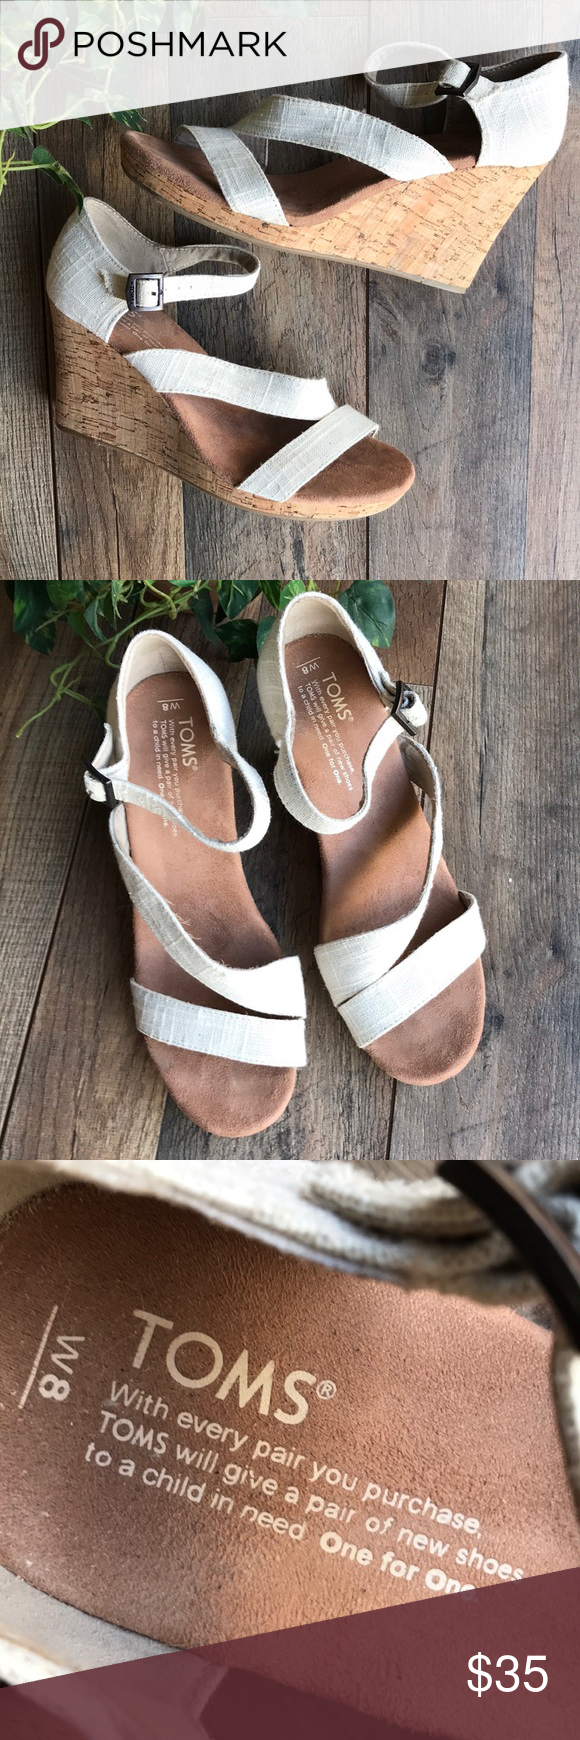 TOMS Wedge Sandals TOMS Wedge Sandals  Size 8 Toms Shoes Wedges #tomwedges